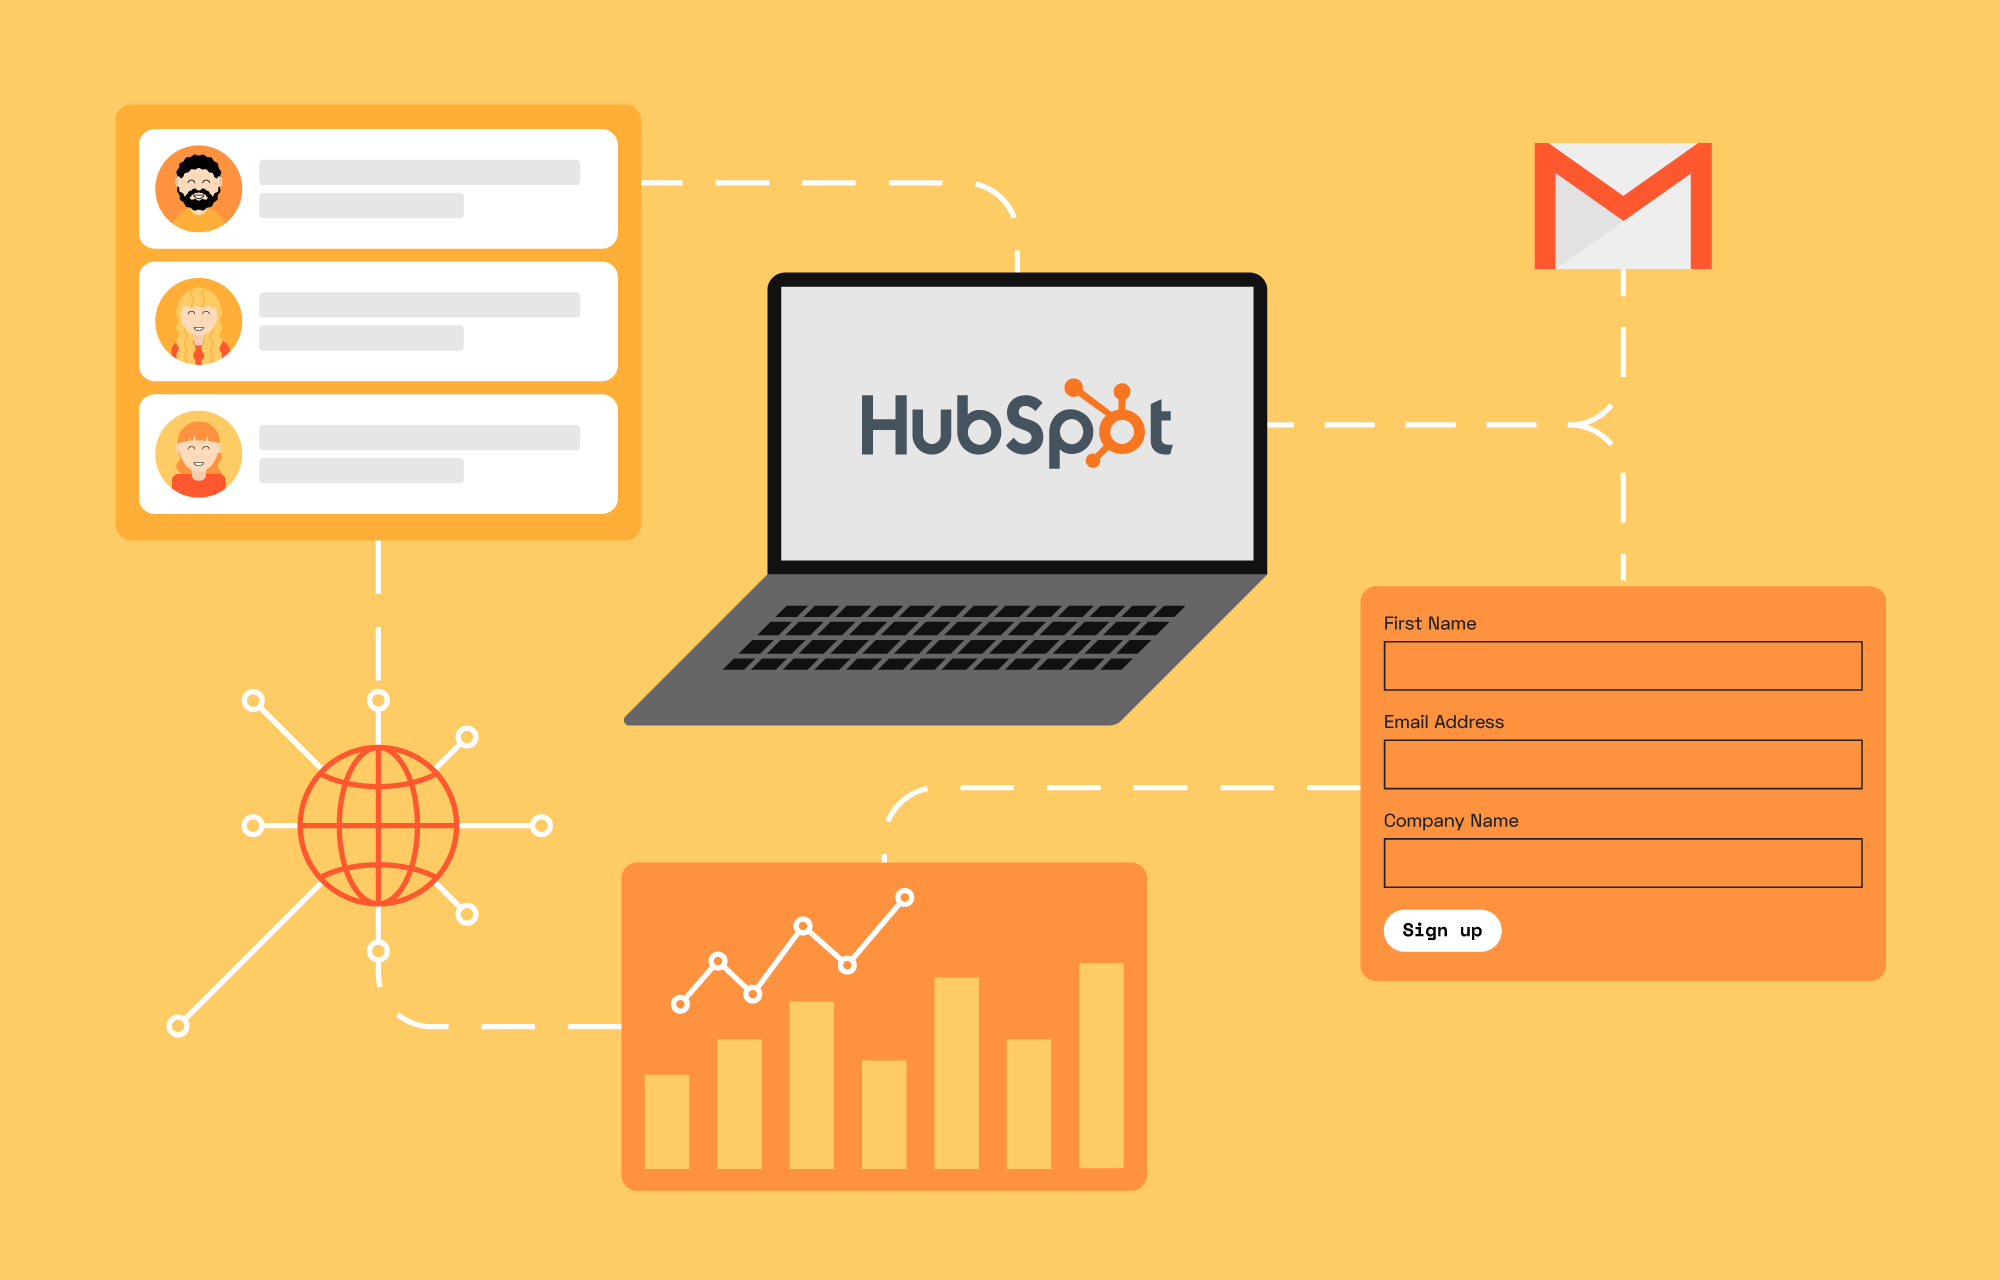 Hubspot Professional Services | Digital Marketing and Consulting Agency